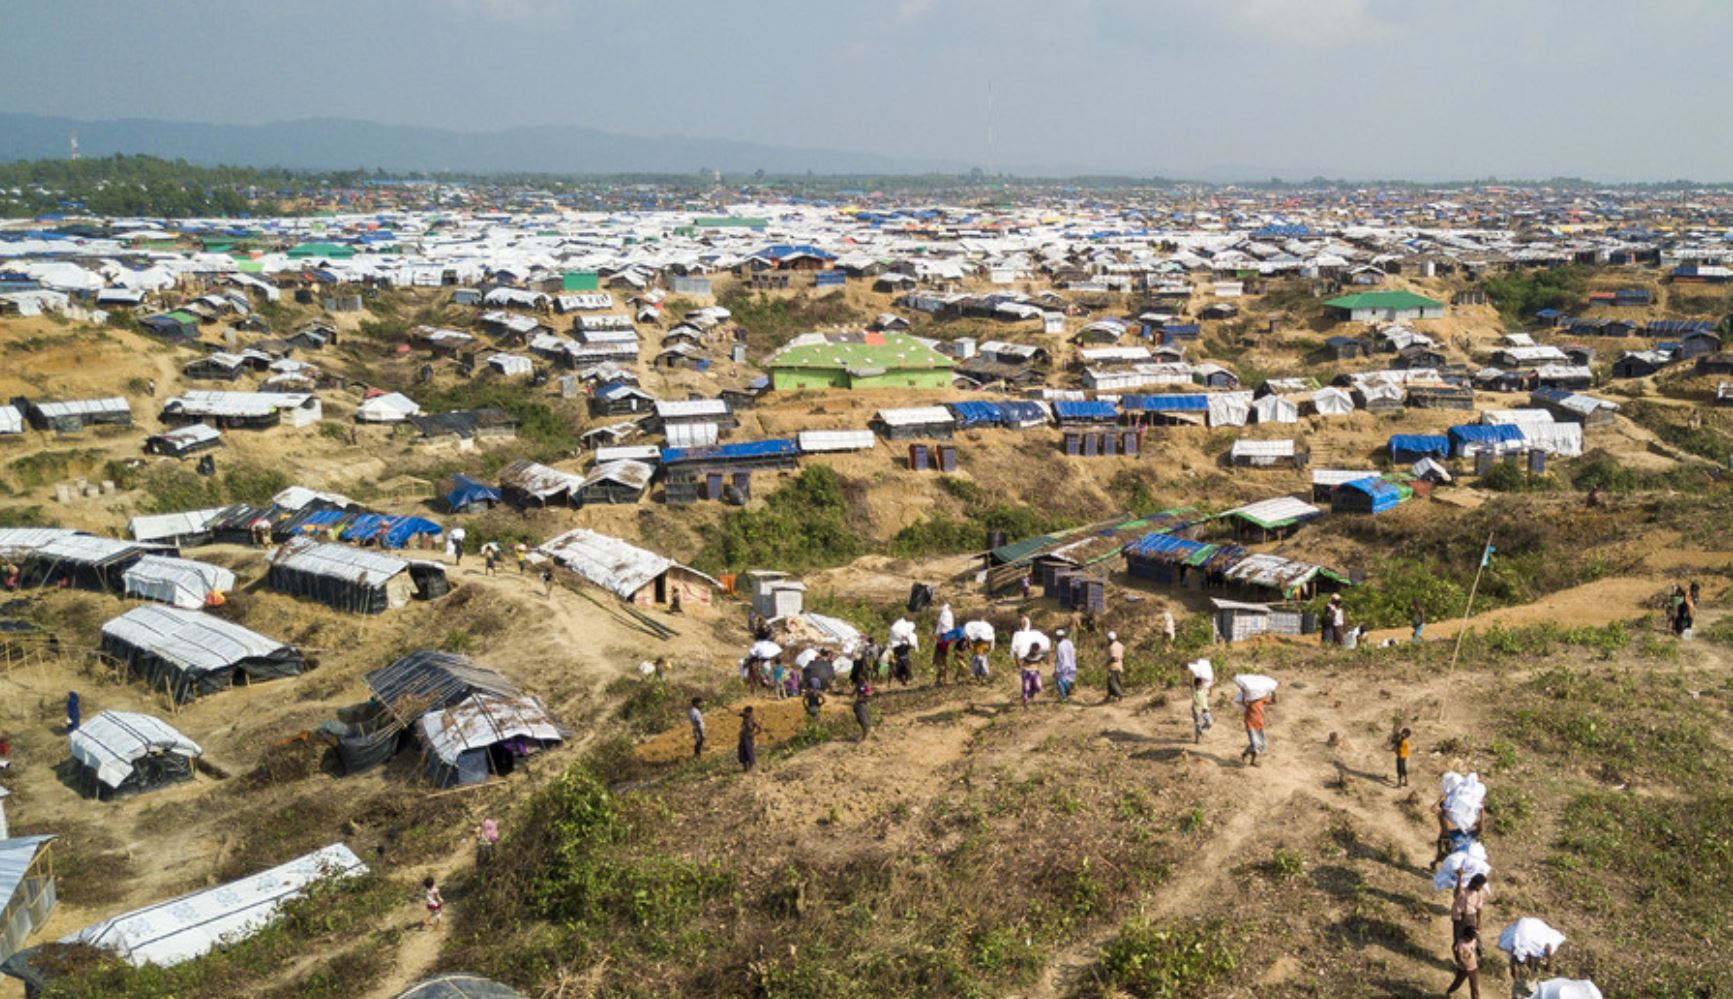 No End in Sight for Rohingya Crisis